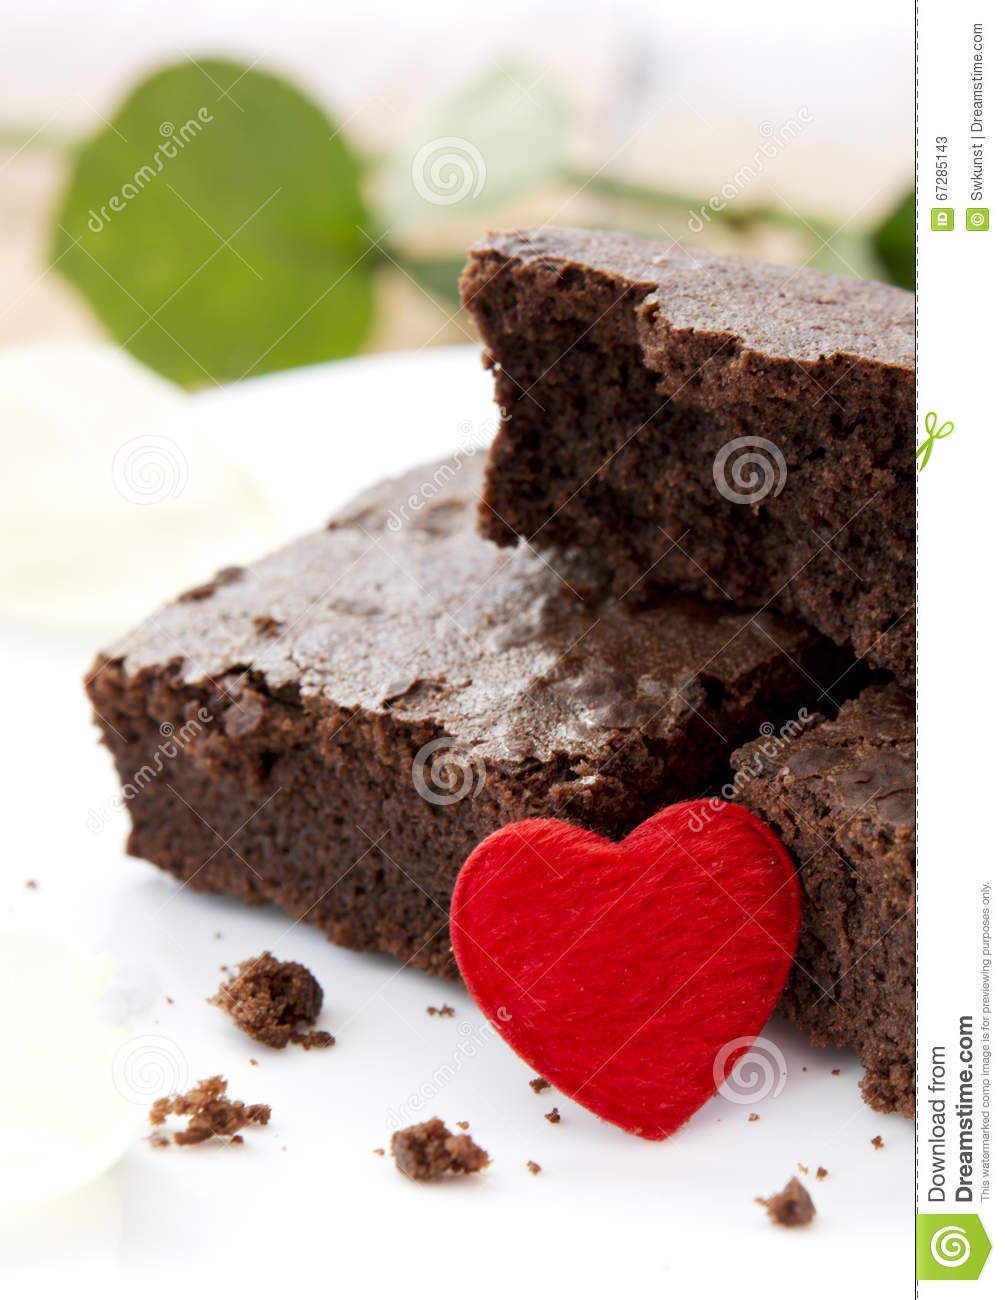 Chocolate Cake With Love Heart Stock Image Image Of Gourmet Gift